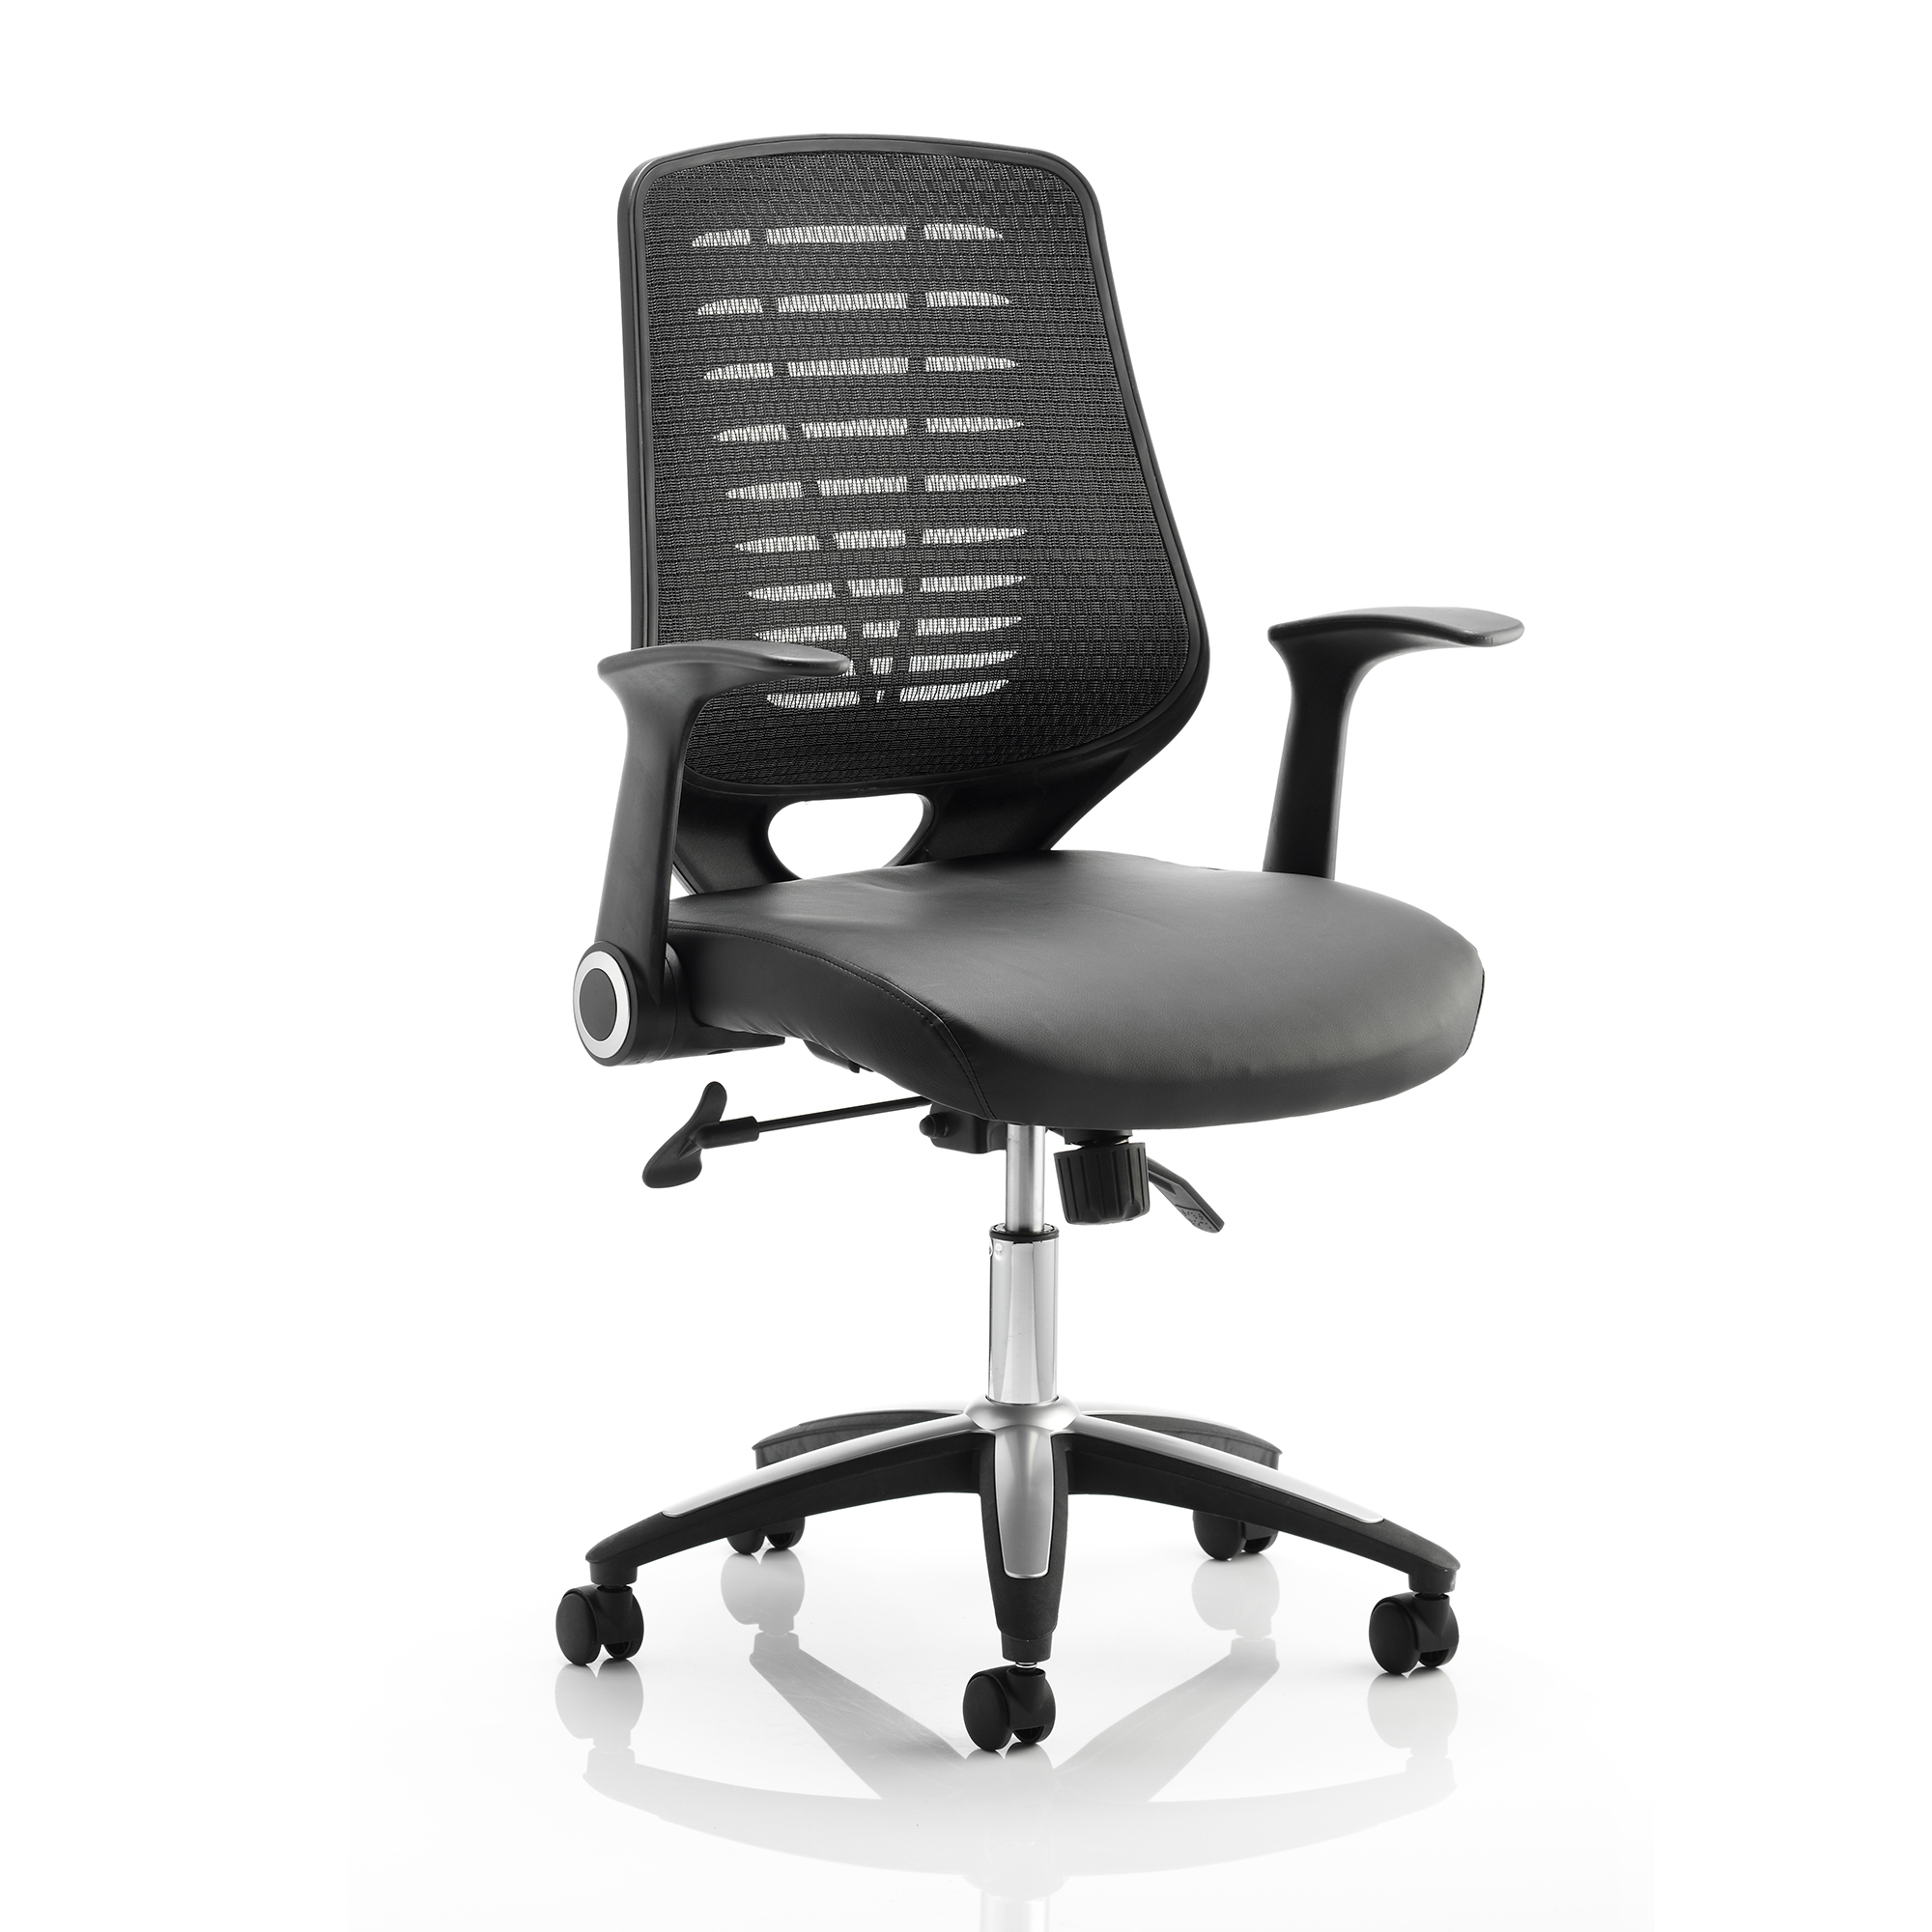 Guest seating Sonix Relay Task Operator Chair With Arms Leather Seat Back Black Ref OP000117